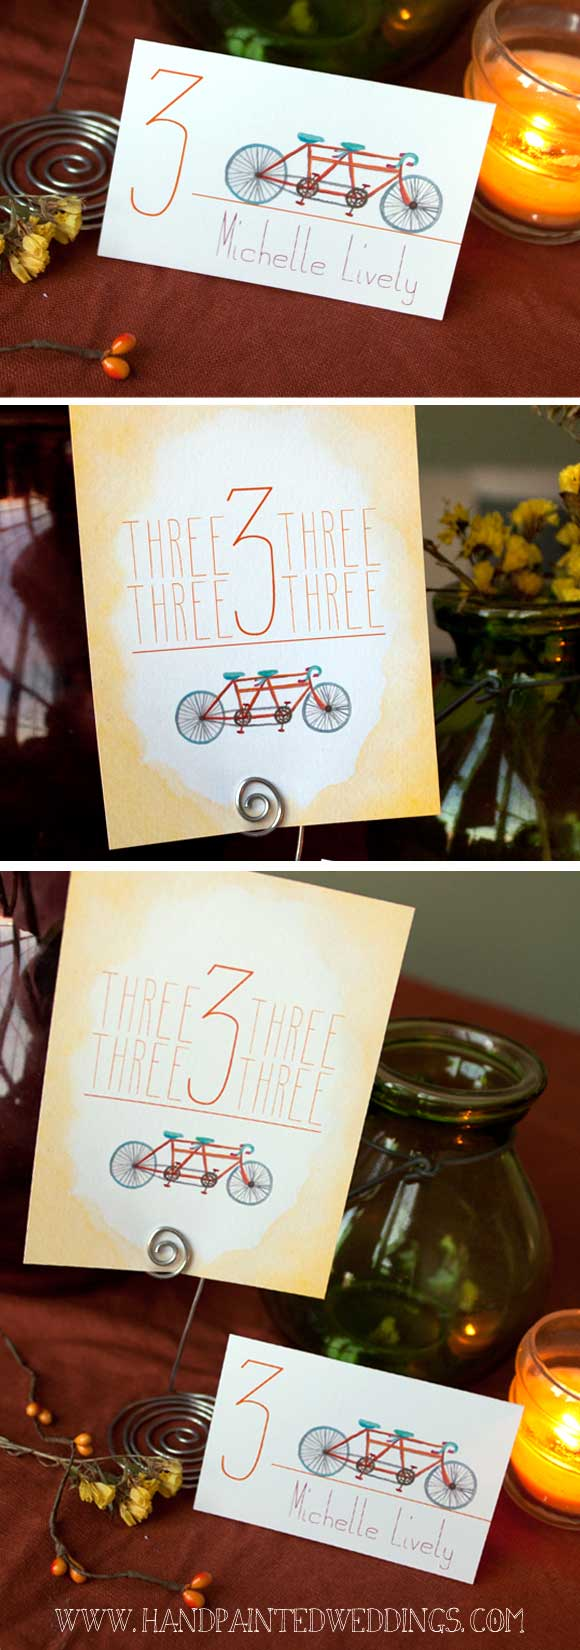 Hand-Painted Reception: Tandem Bike theme